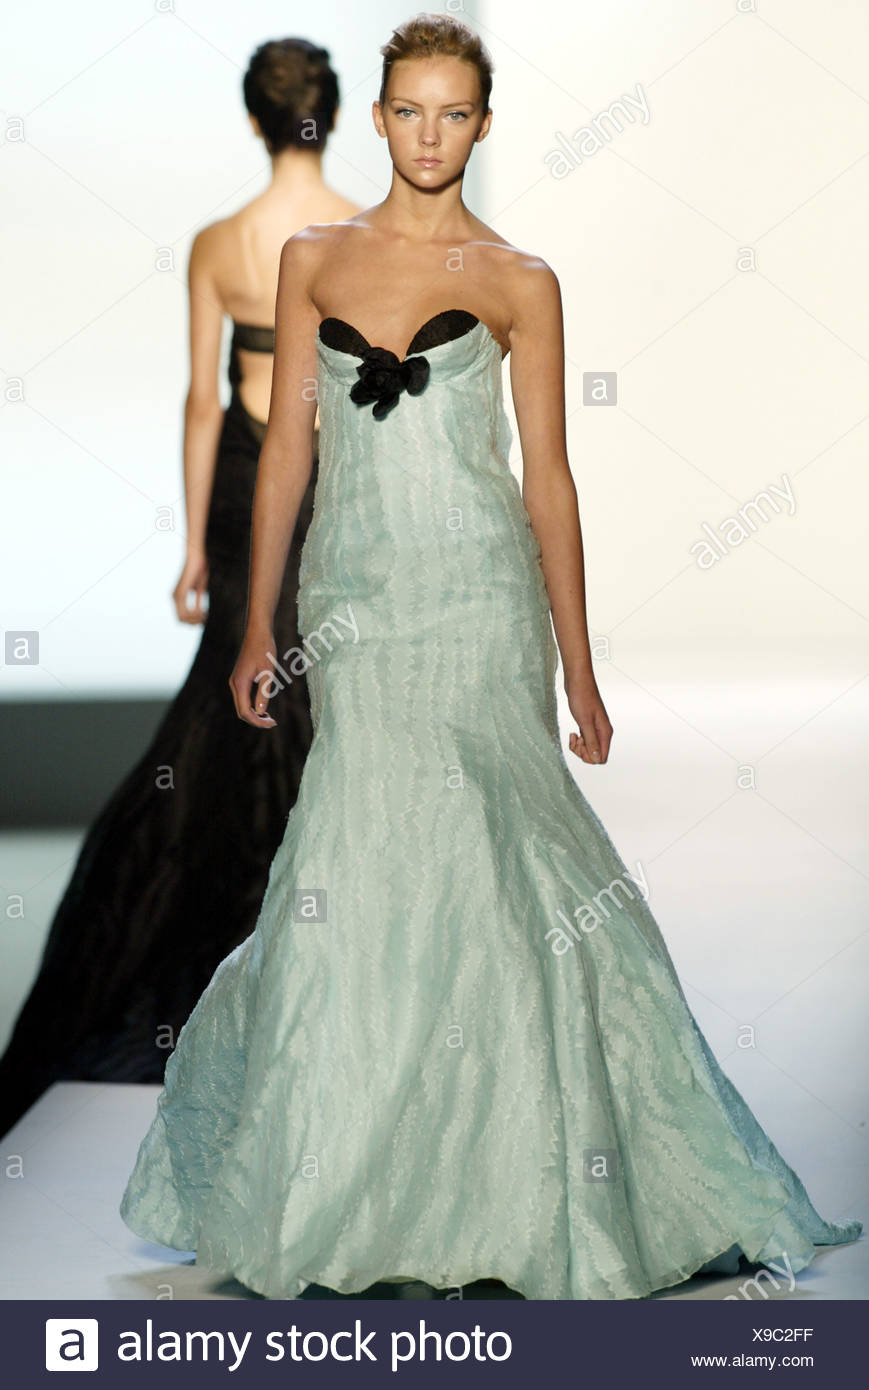 Green Strapless Evening Gown Stock Photos & Green Strapless Evening ...